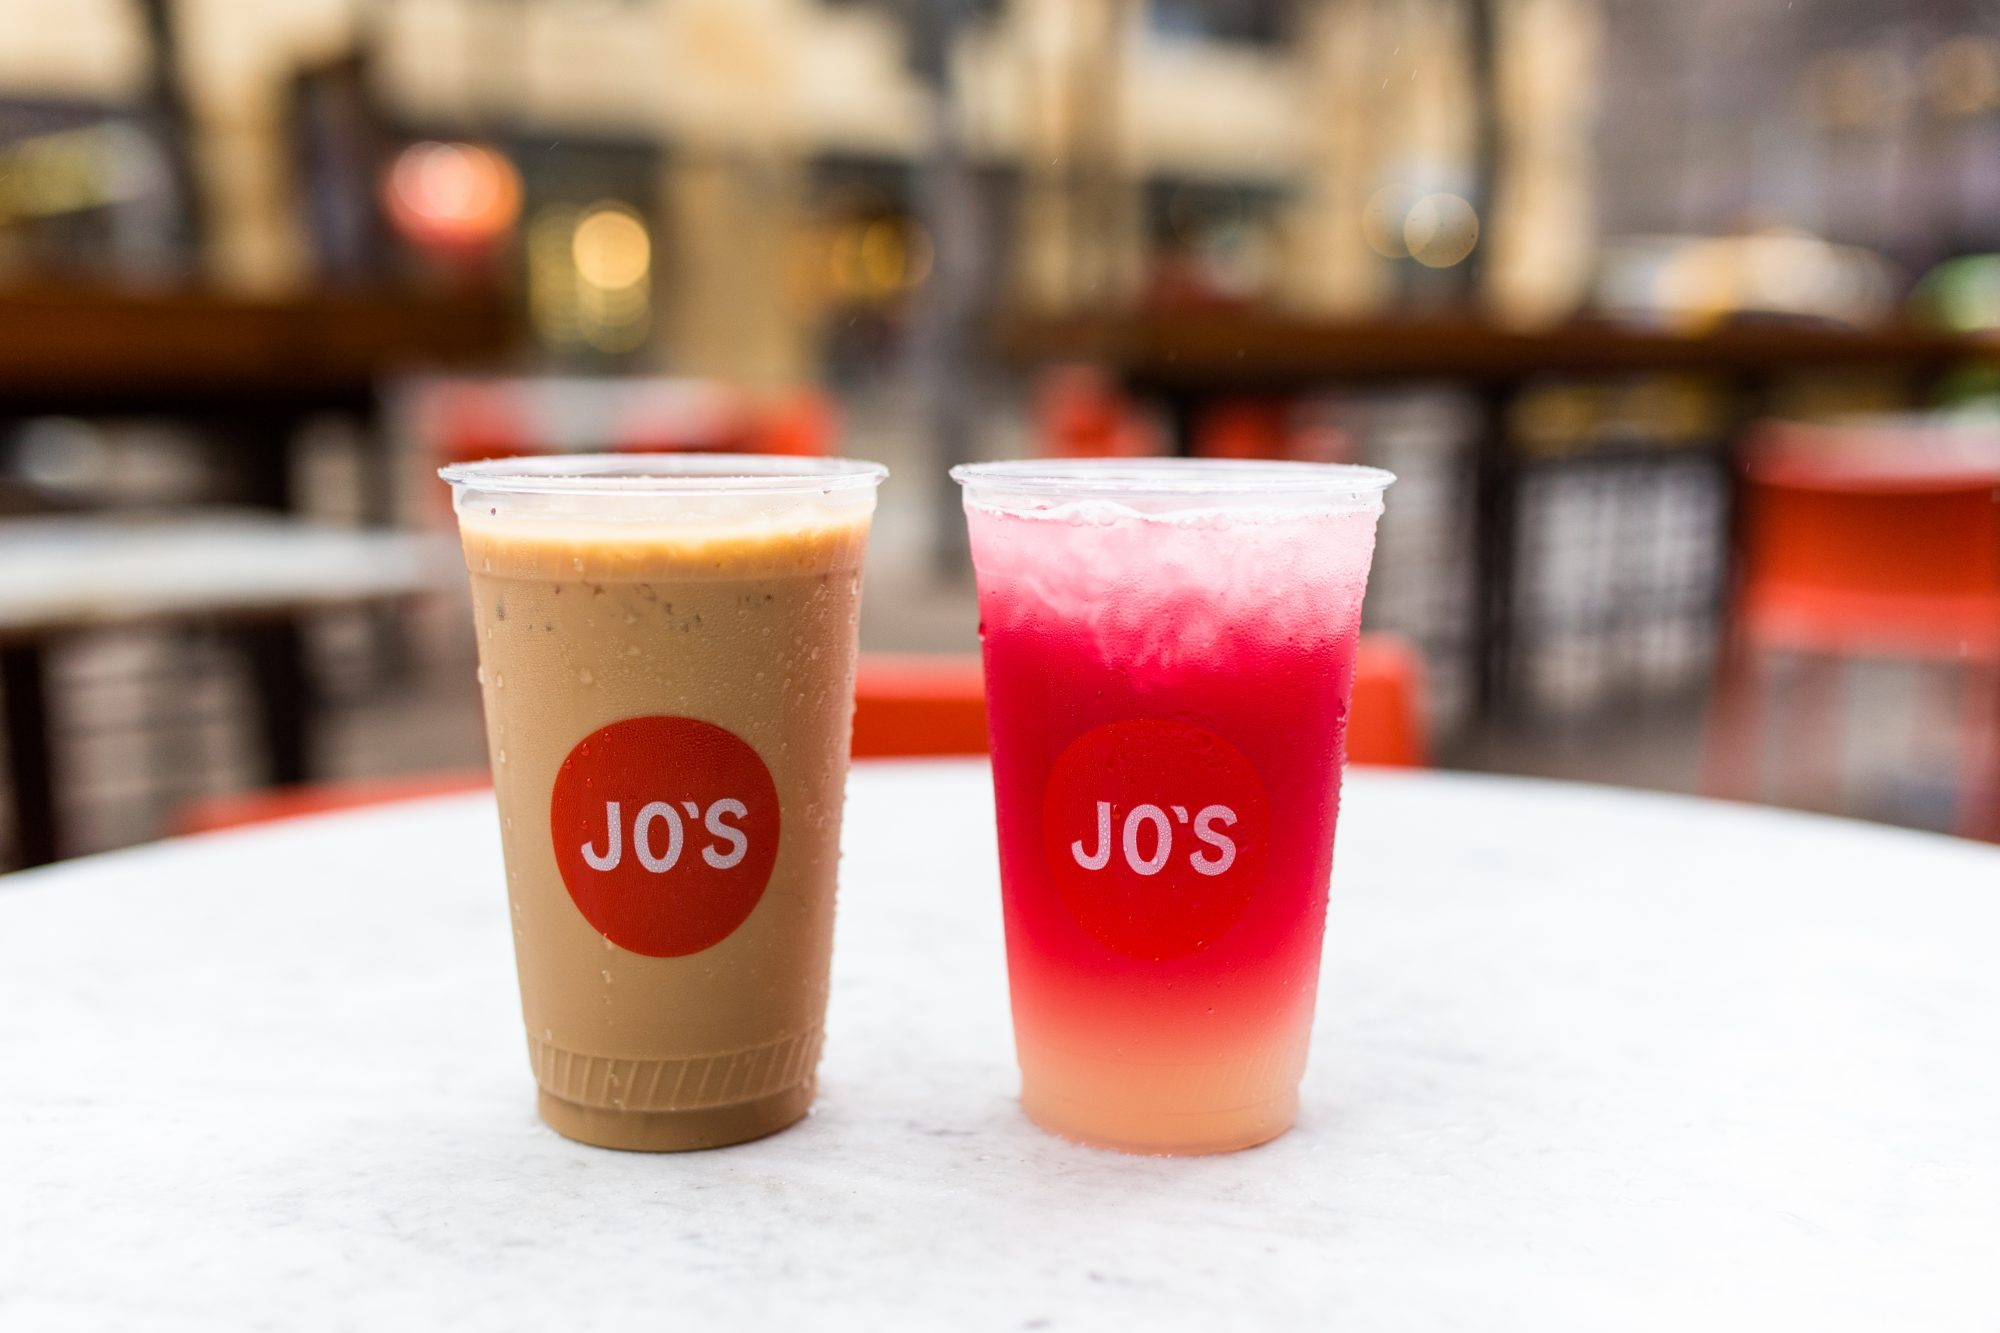 Two iced drinks with the Jo's diner logo